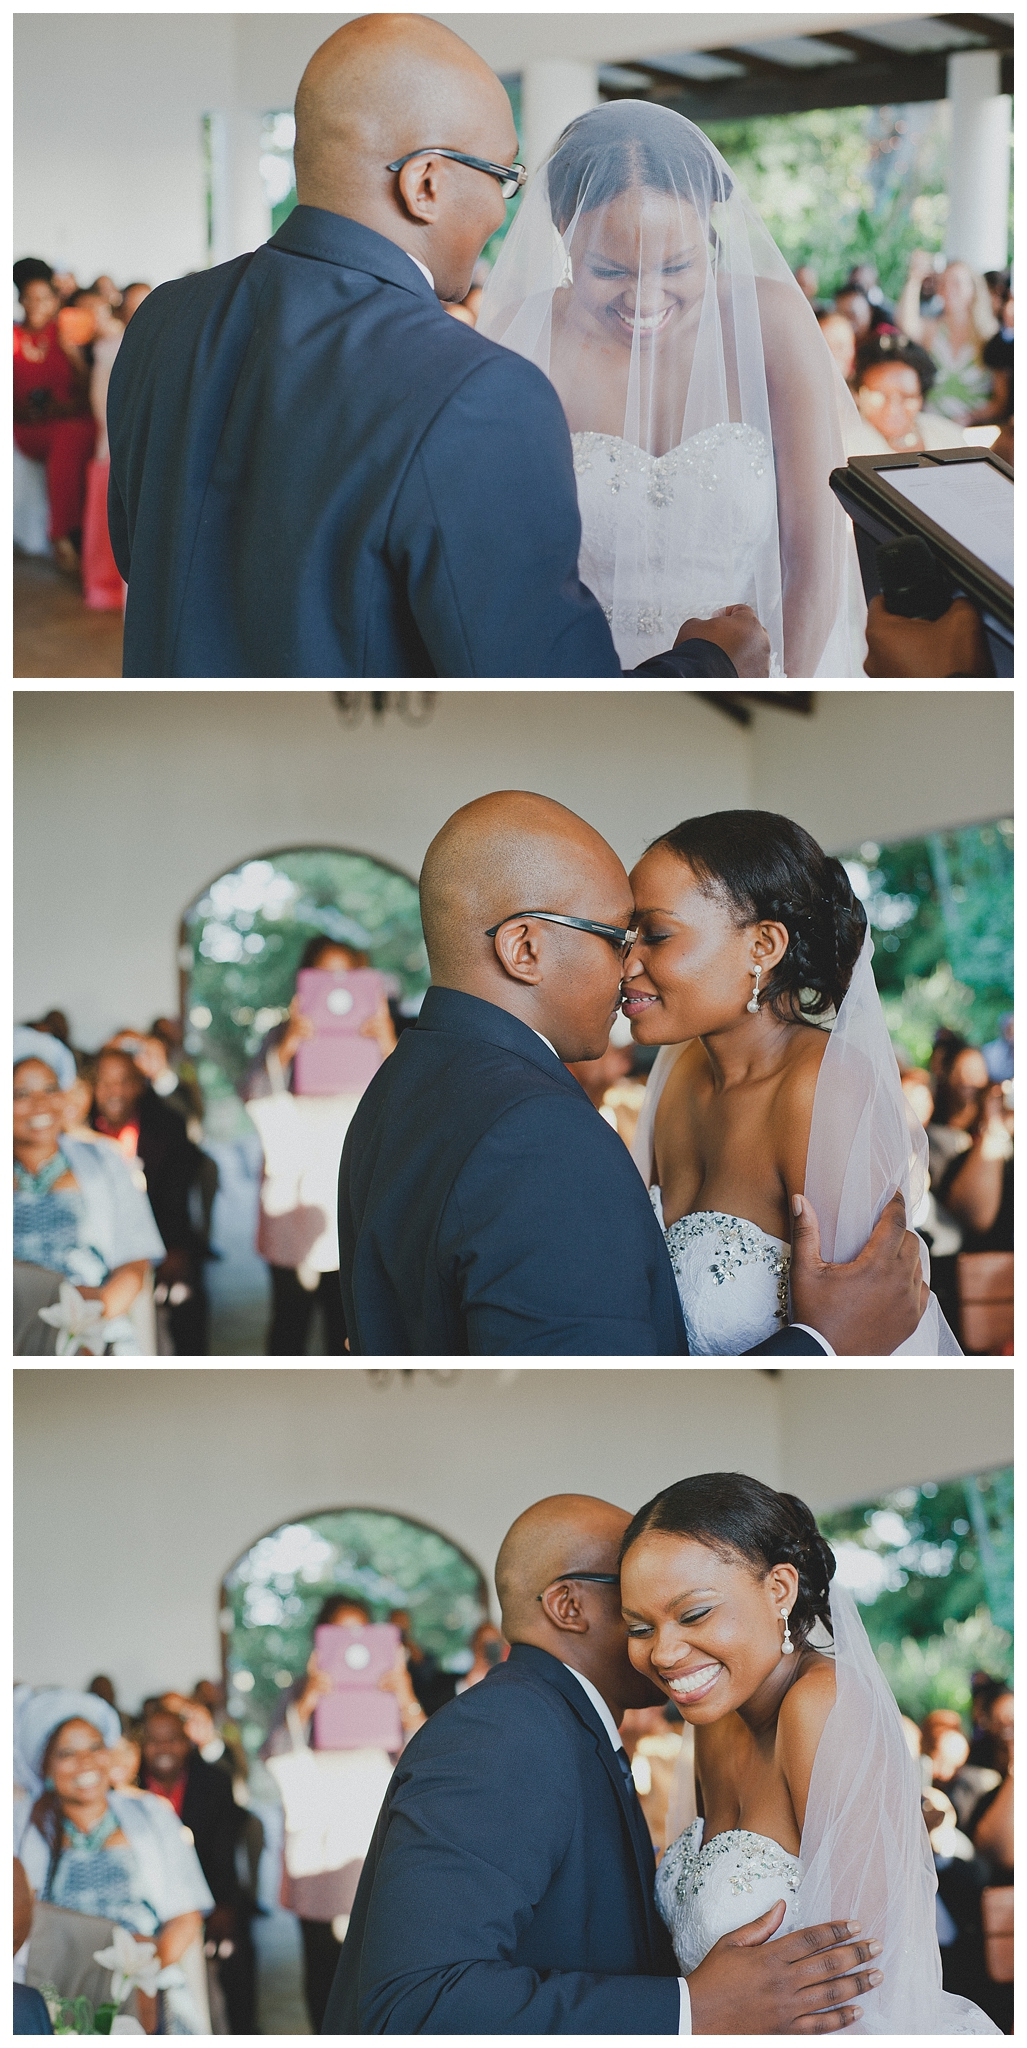 , Nonhlanhla and Thembani at The Orchid House, Casey Pratt Photography